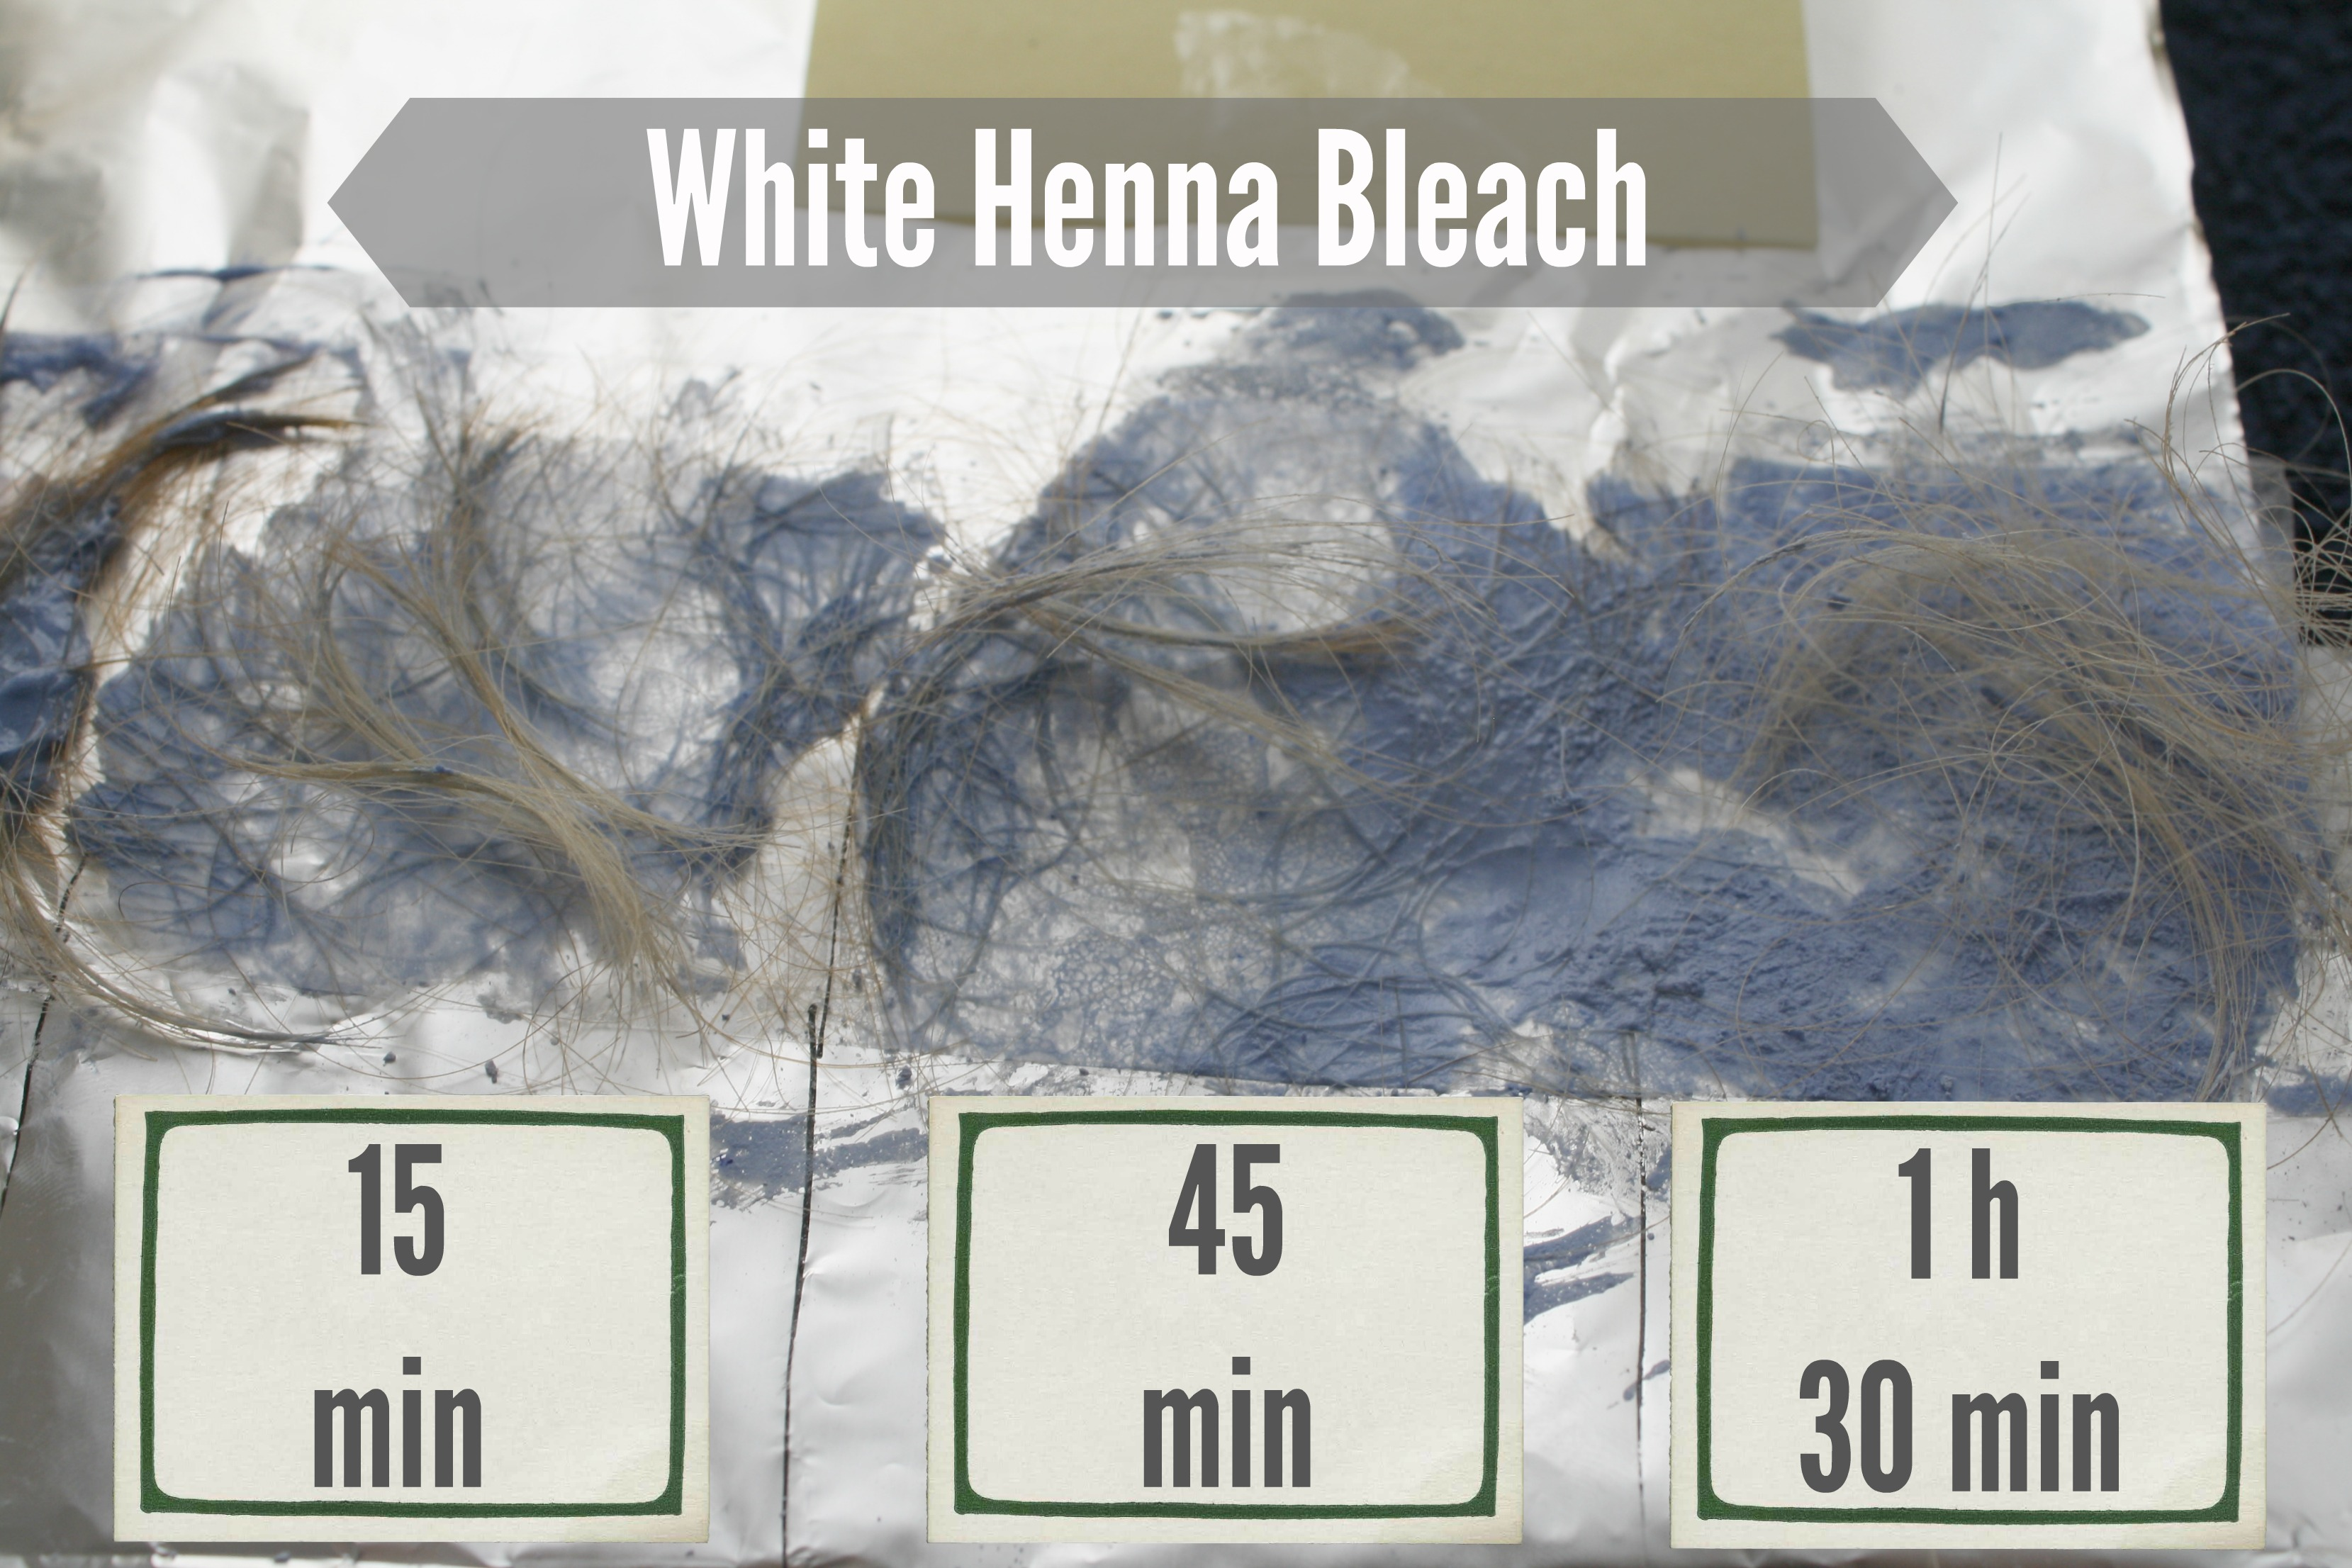 White-henna-bleach-stage-3